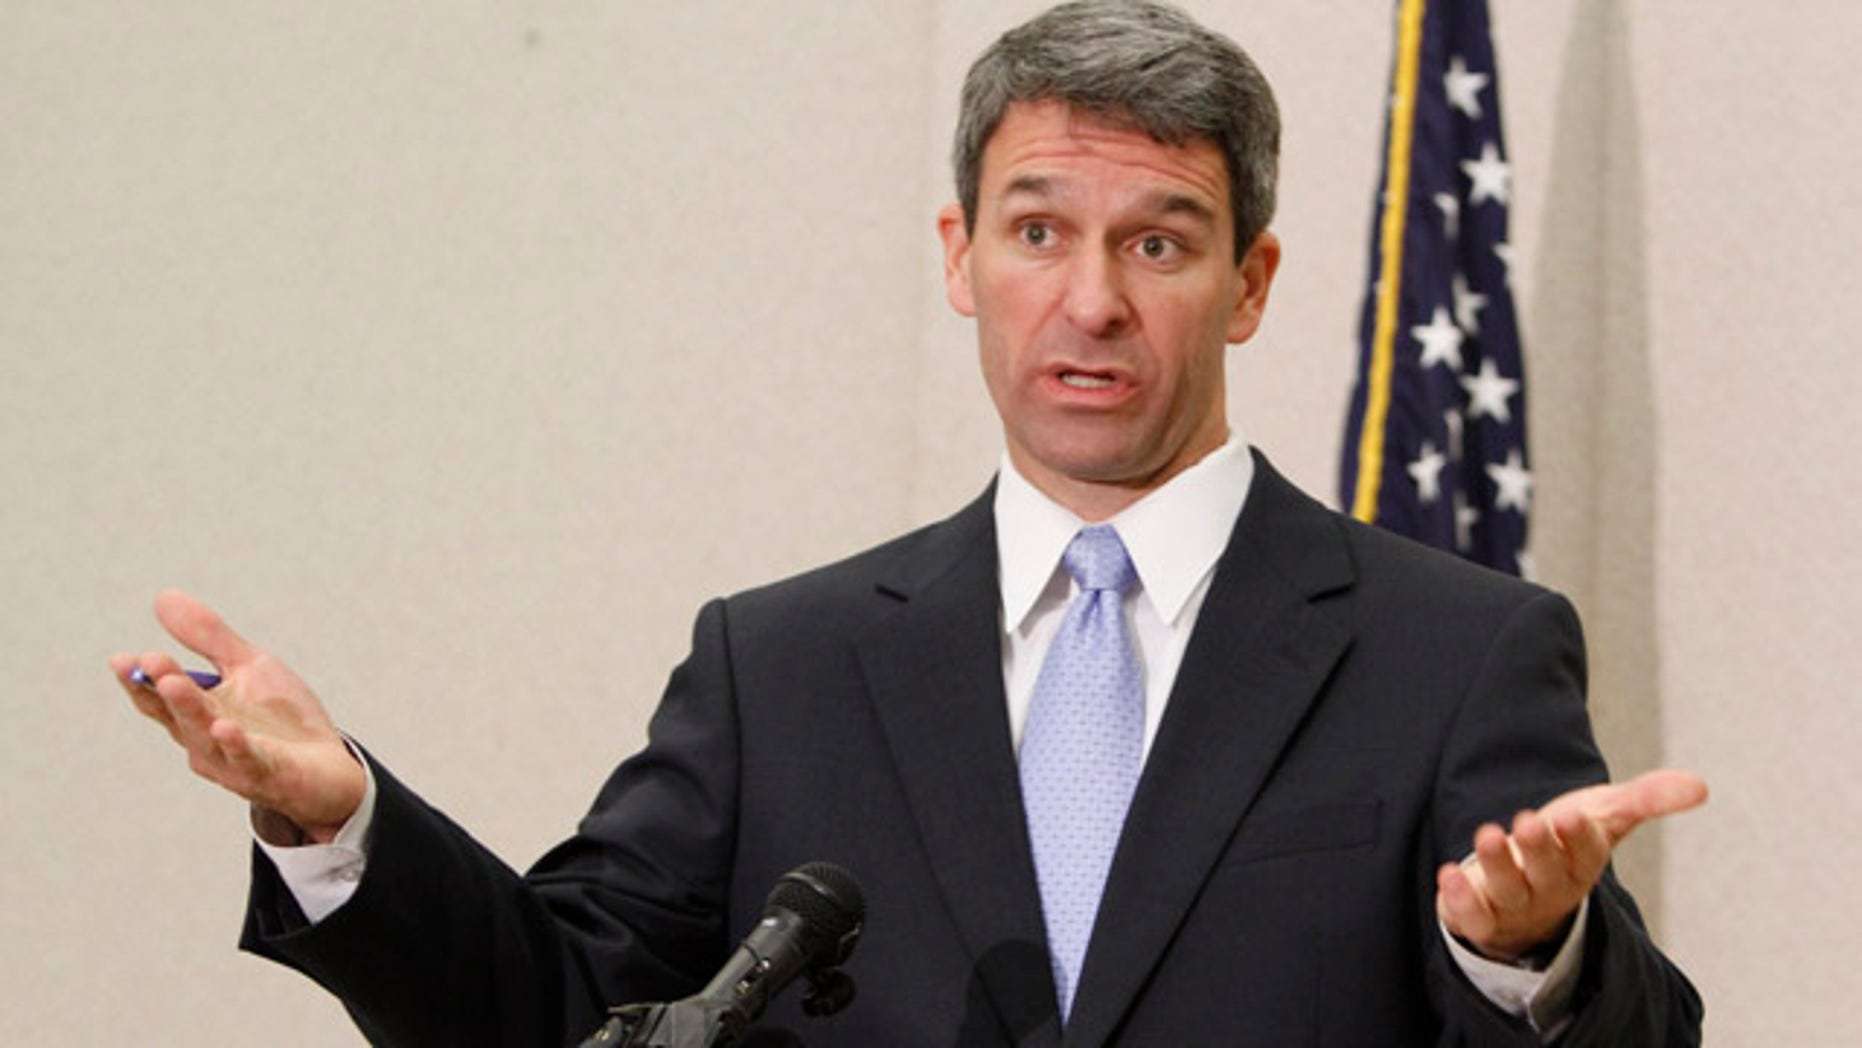 May 10, 2011: Virginia Attorney General Ken Cuccinelli gestures during a press conference after a hearing before the 4th Circuit Court of Appeals on a challenge to the federal health care reform act in Richmond, Va.